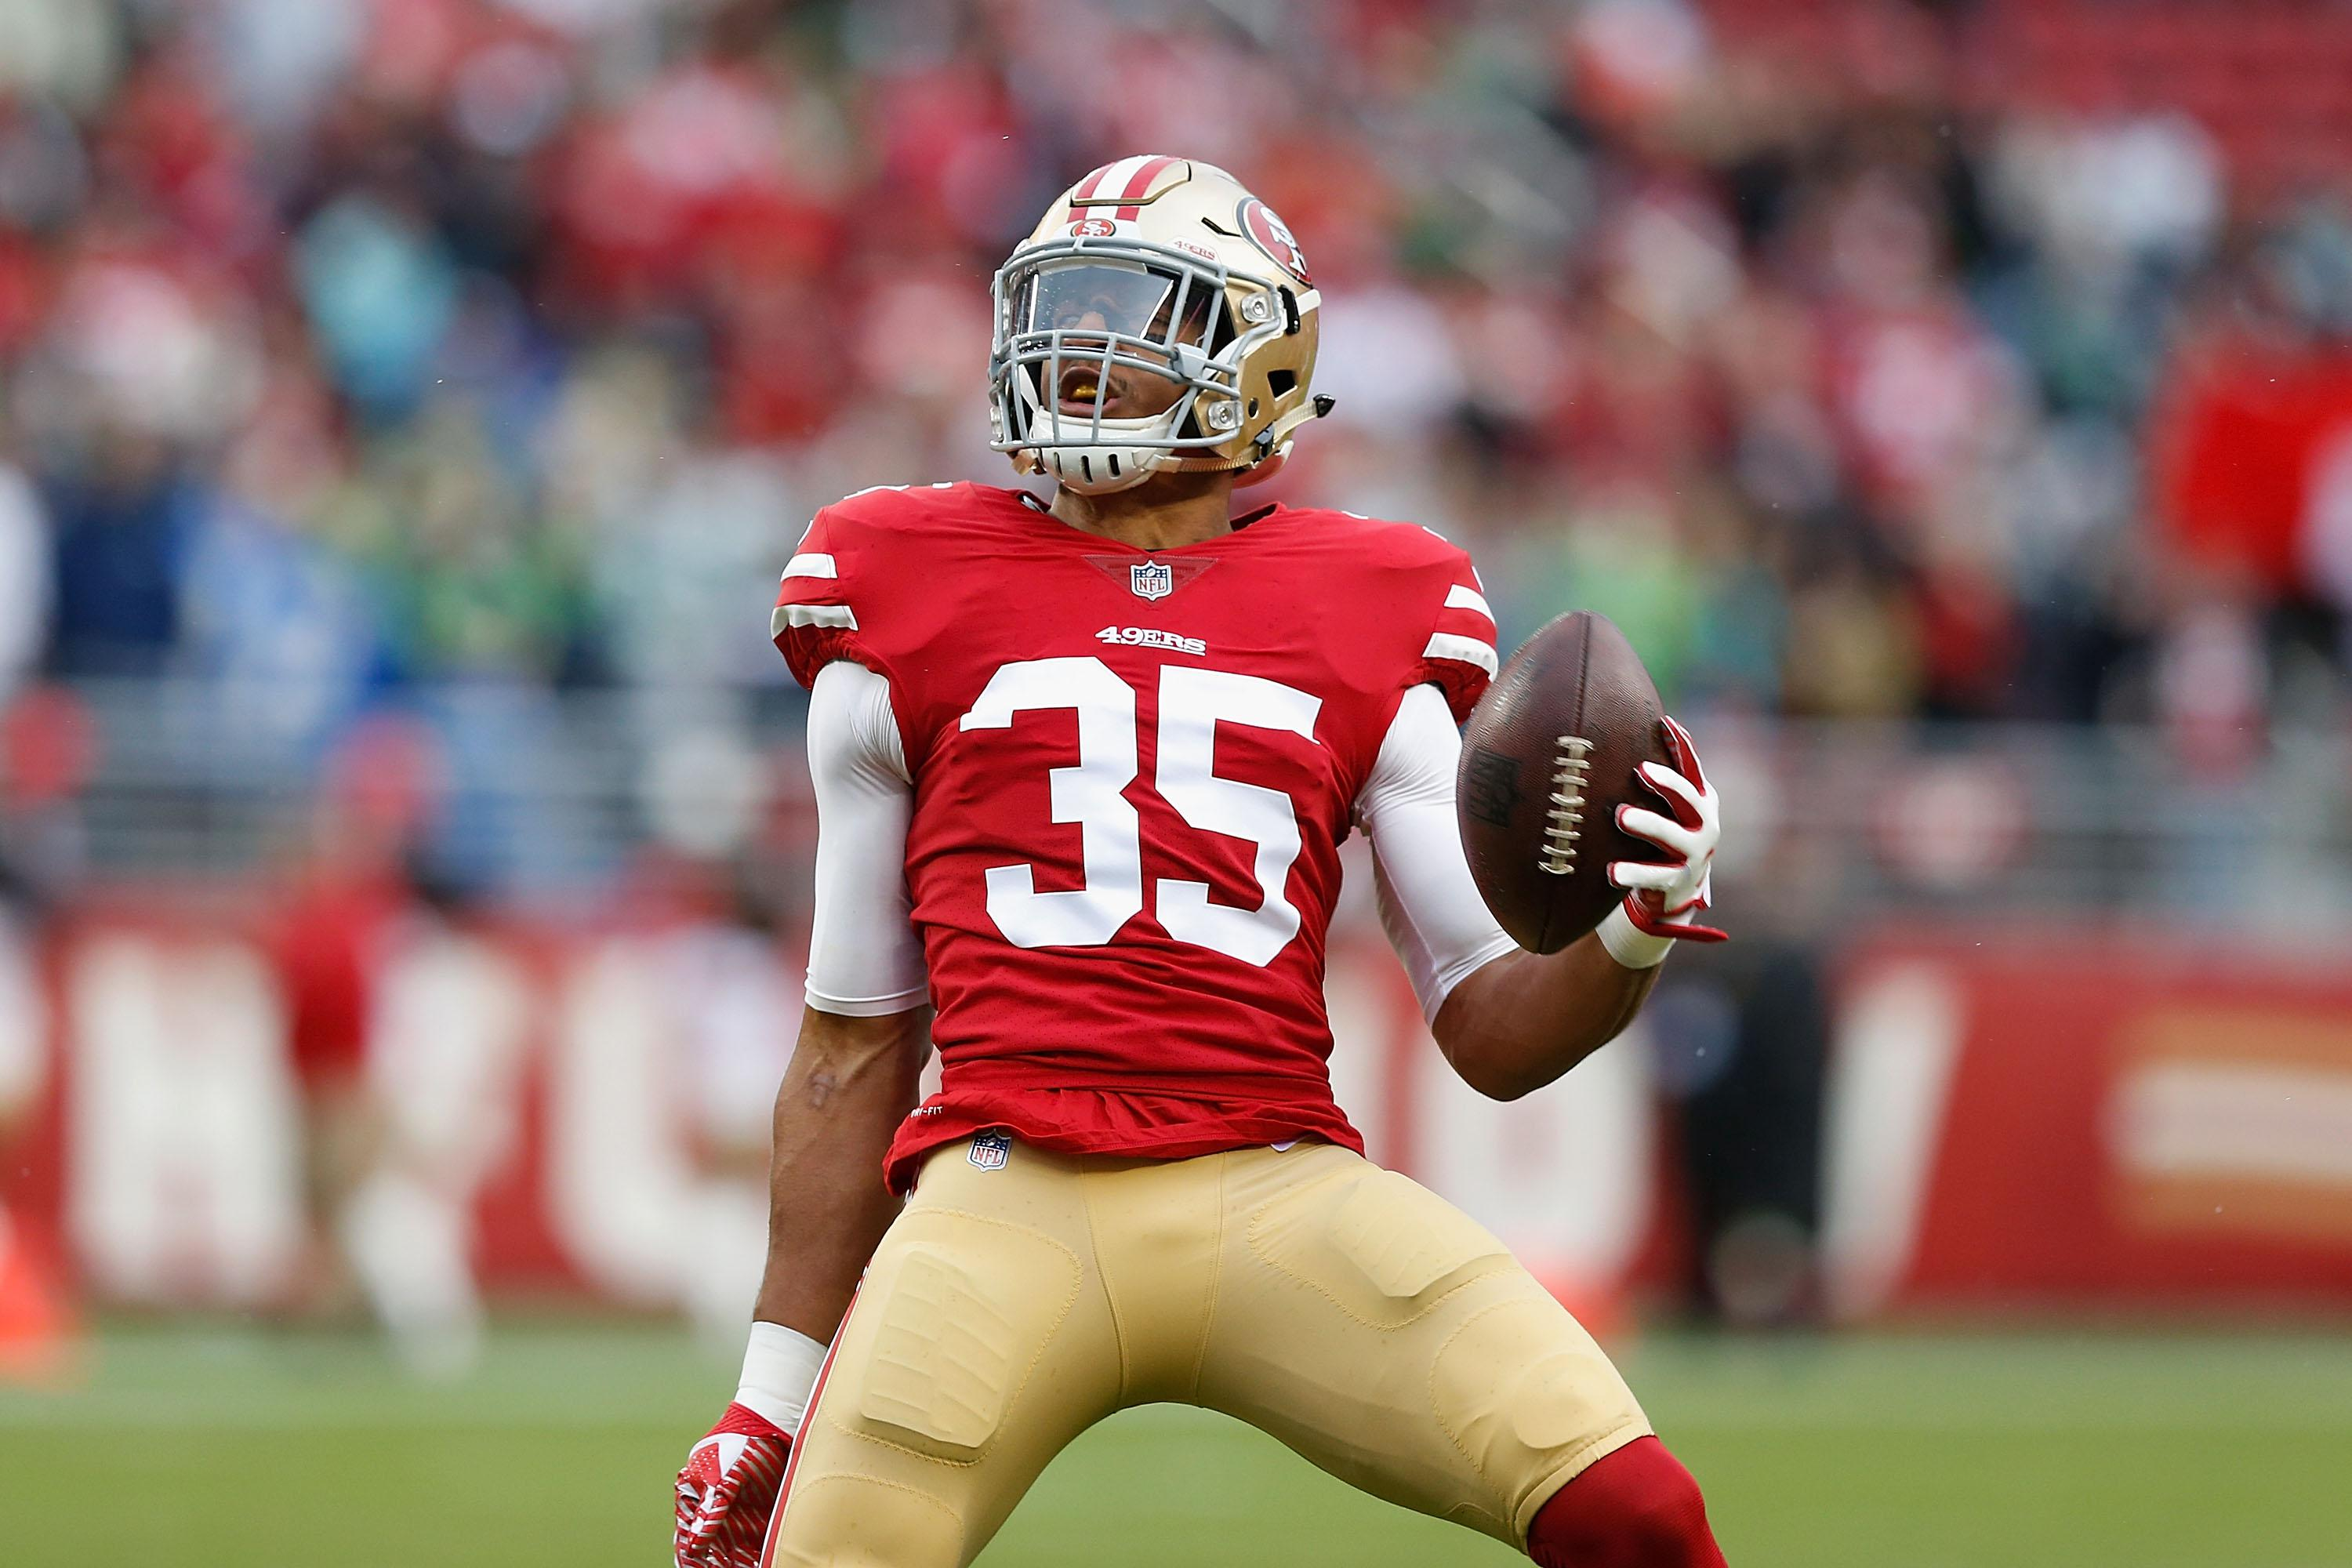 SANTA CLARA, CA - NOVEMBER 26: Eric Reid #35 celebrates after intercepting a pass against the Seattle Seahawks at Levi's Stadium on November 26, 2017 in Santa Clara, California. (Photo by Lachlan Cunningham/Getty Images)